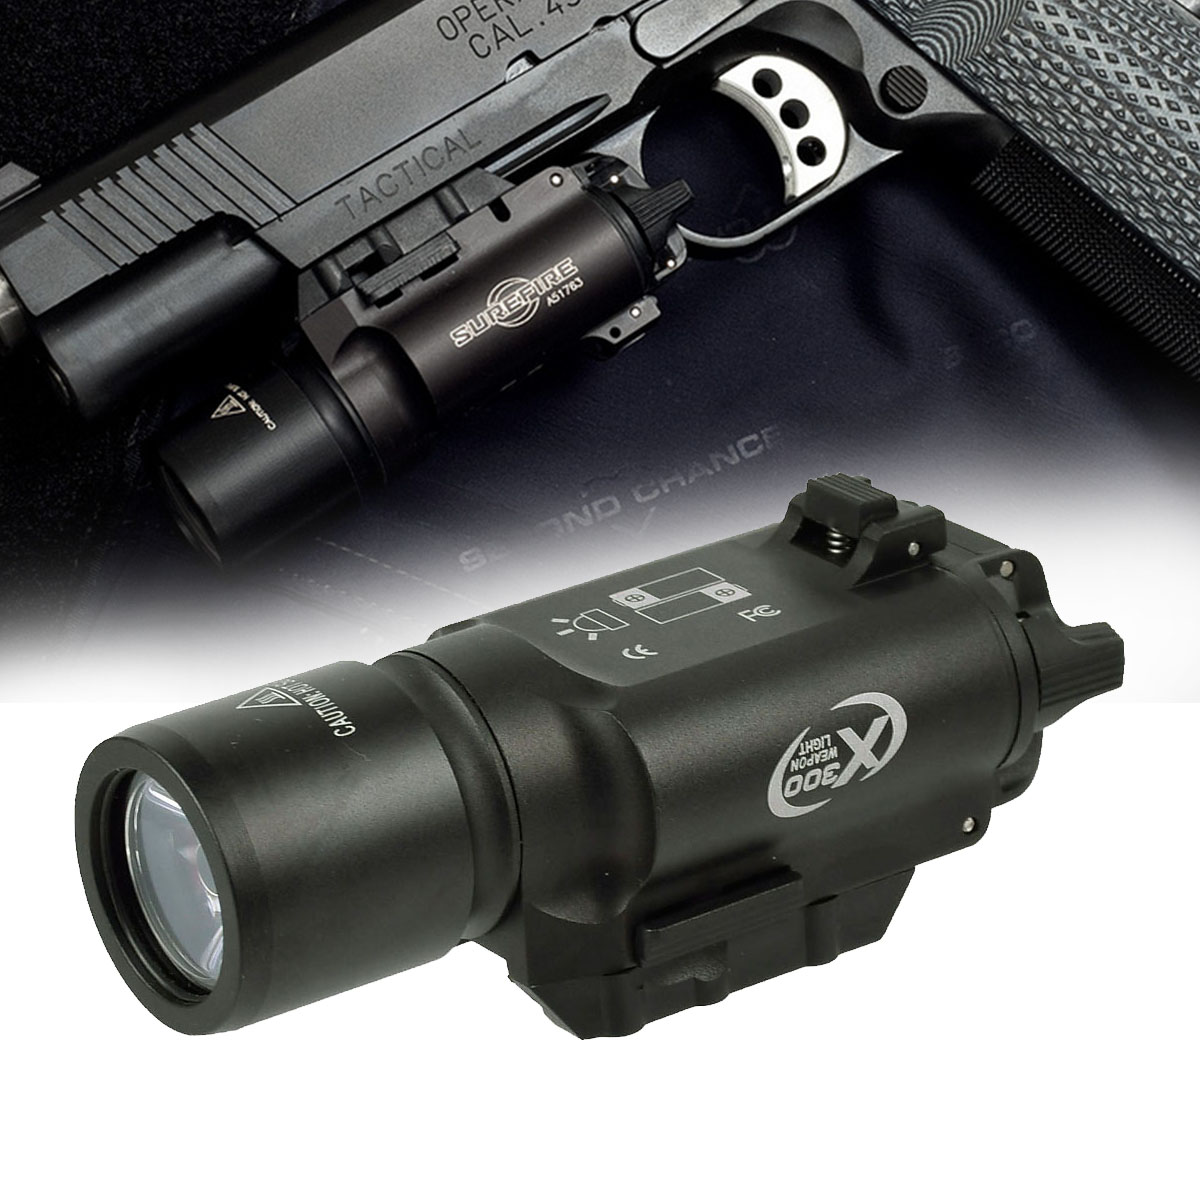 500 Lumens High Output Tactical X300 Pistol Gun Light Weapon Light Lanterna Airsoft Flashlight Fit 20mm Picatinny Weaver Rail